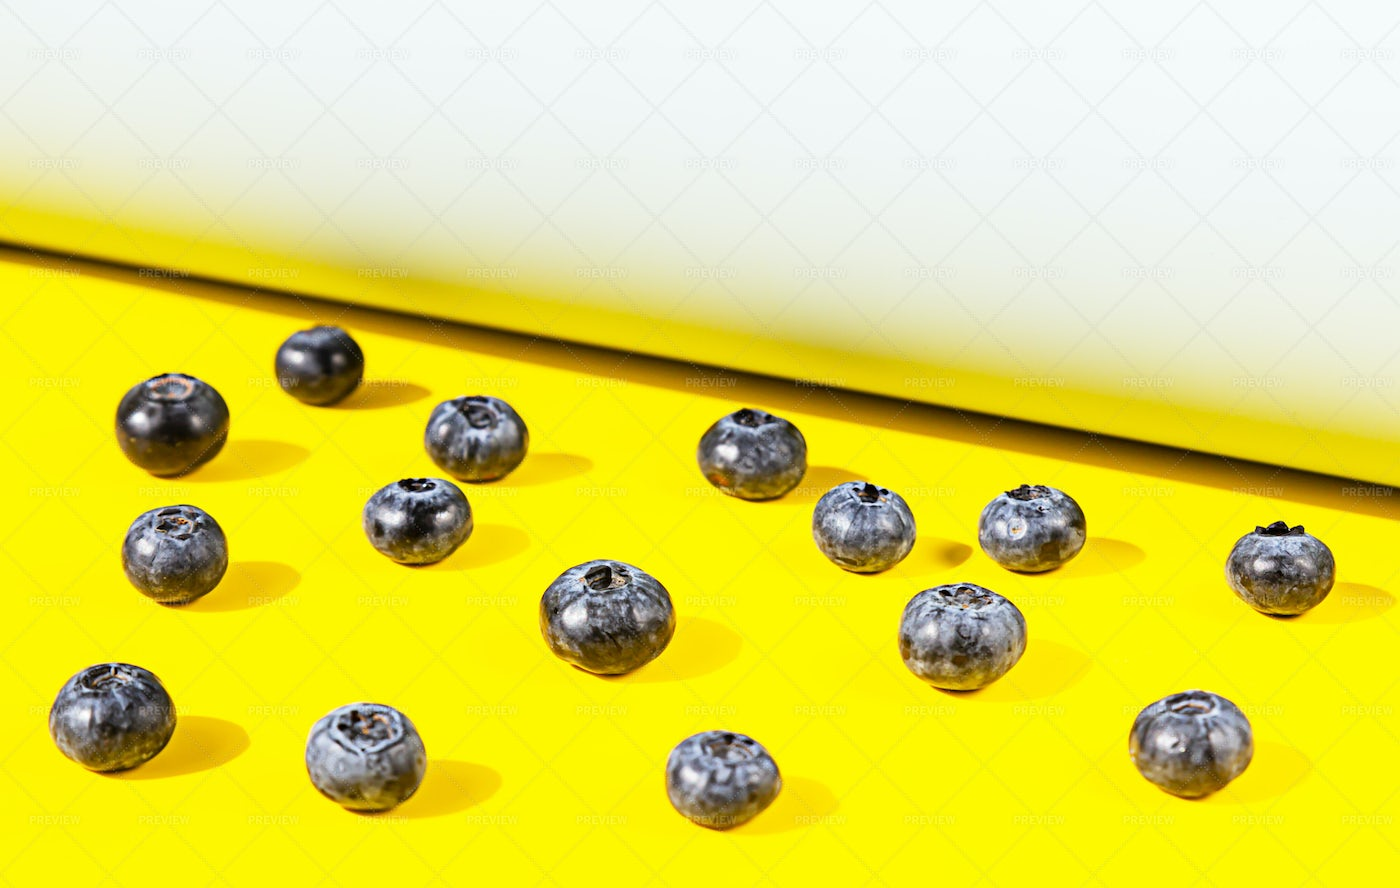 Blueberry Pattern On Yellow: Stock Photos